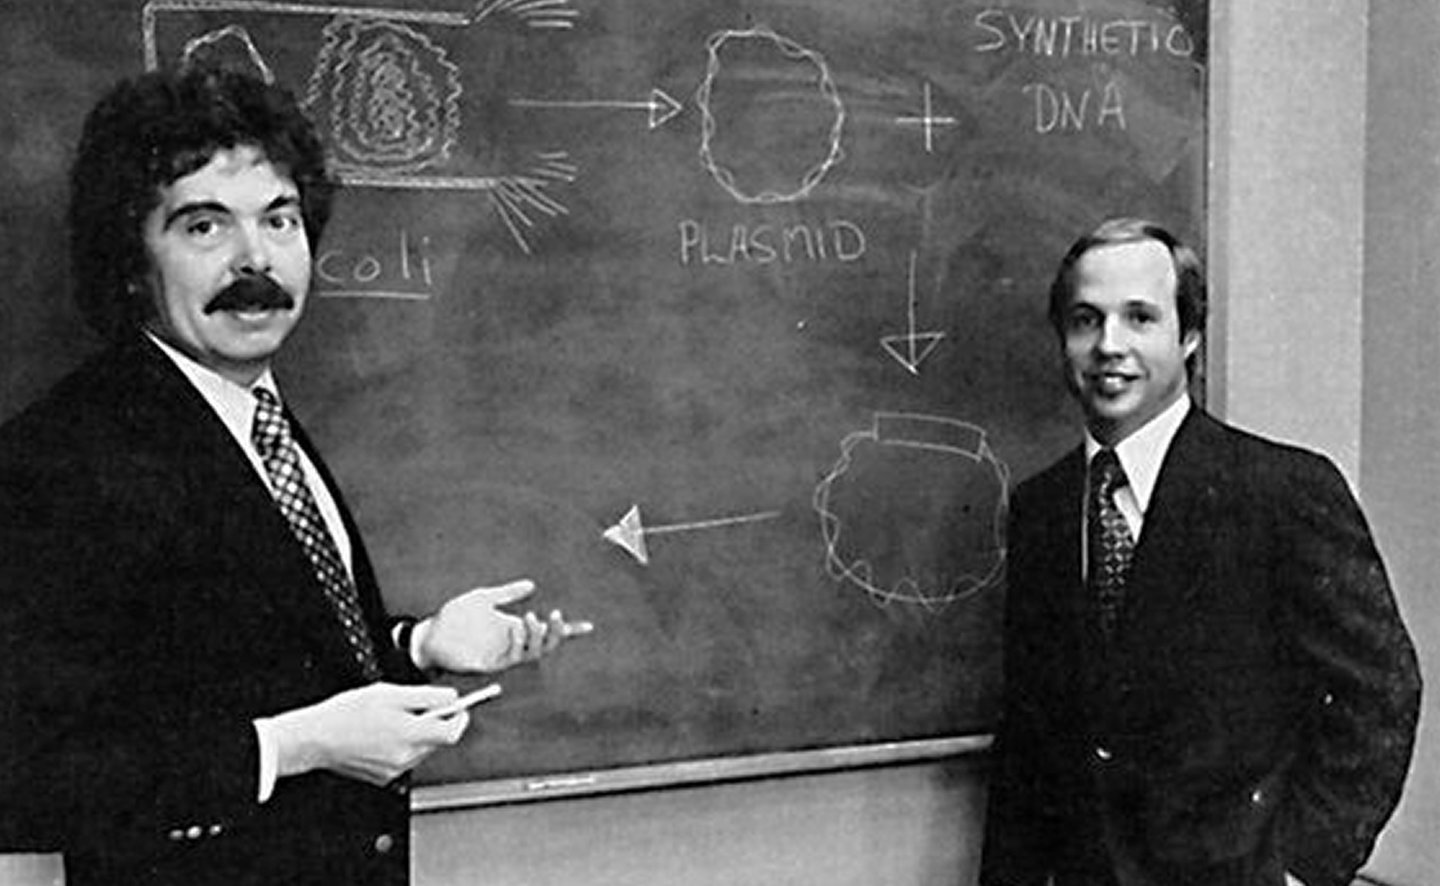 Founders: Herb Boyer and Bob Swanson